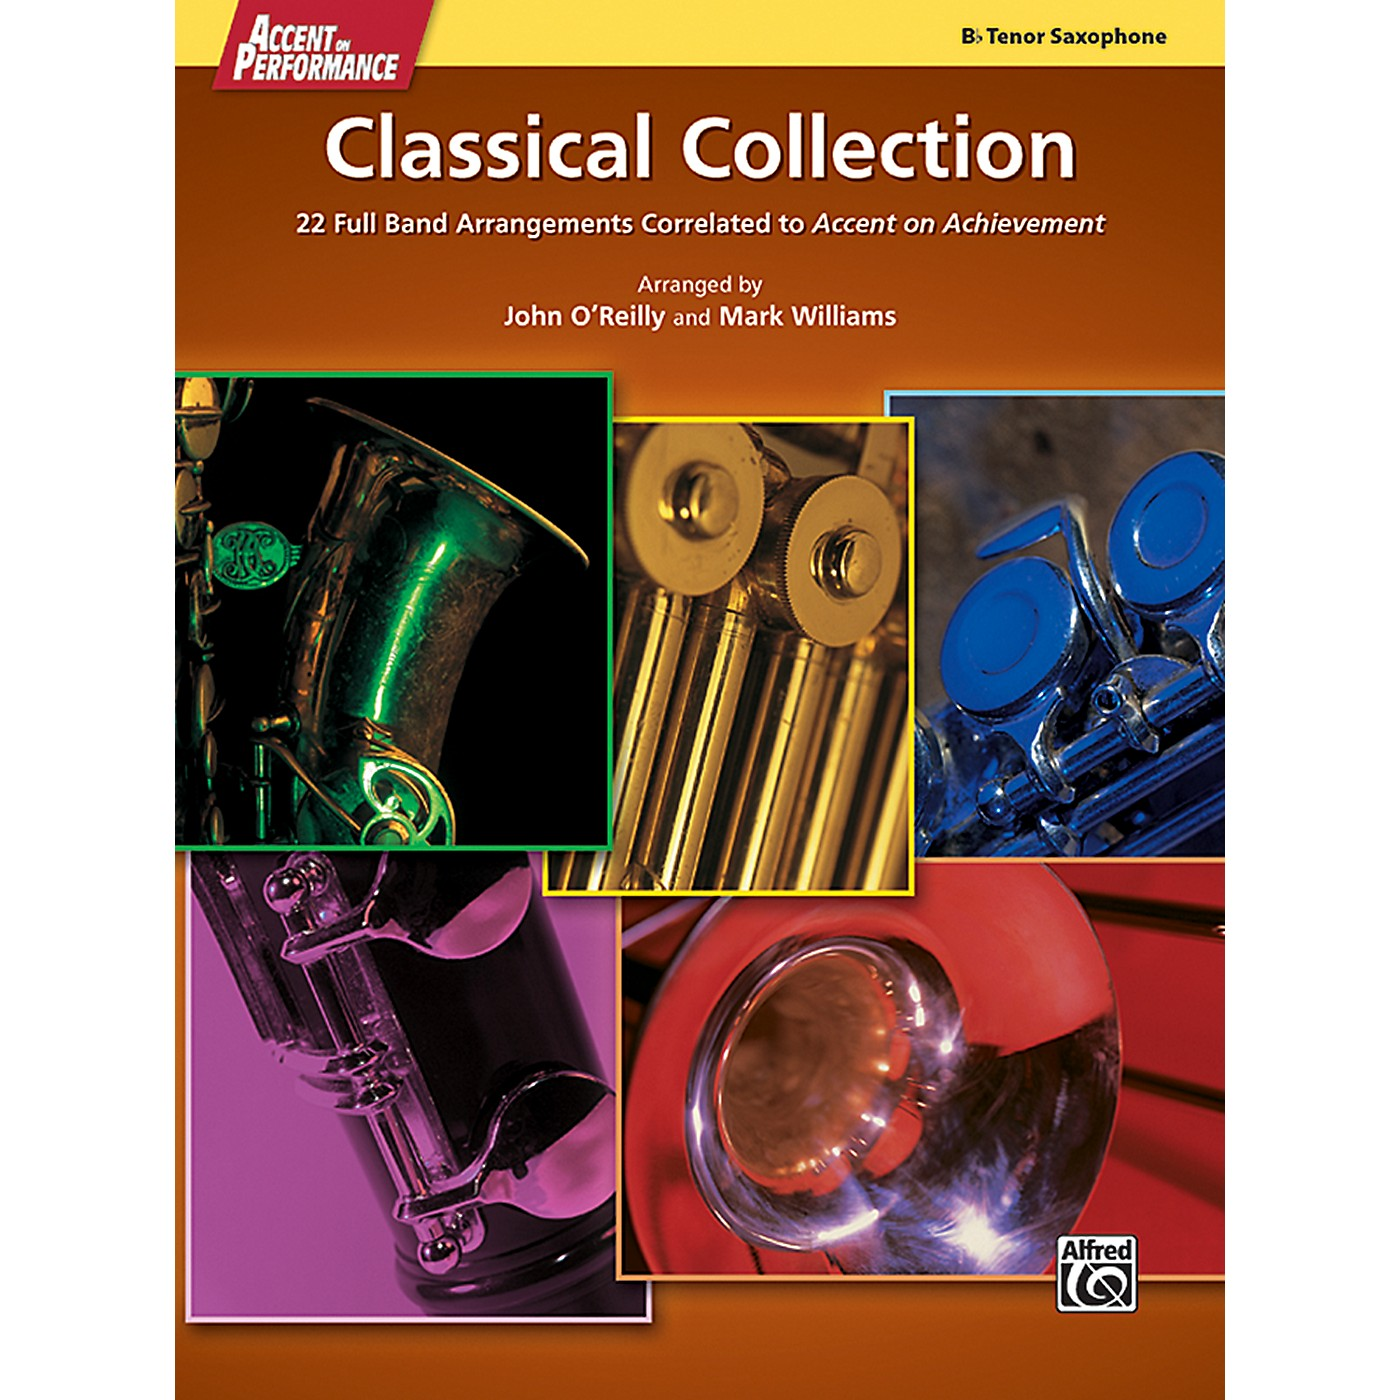 Alfred Accent on Performance Classical Collection Tenor Saxophone Book thumbnail